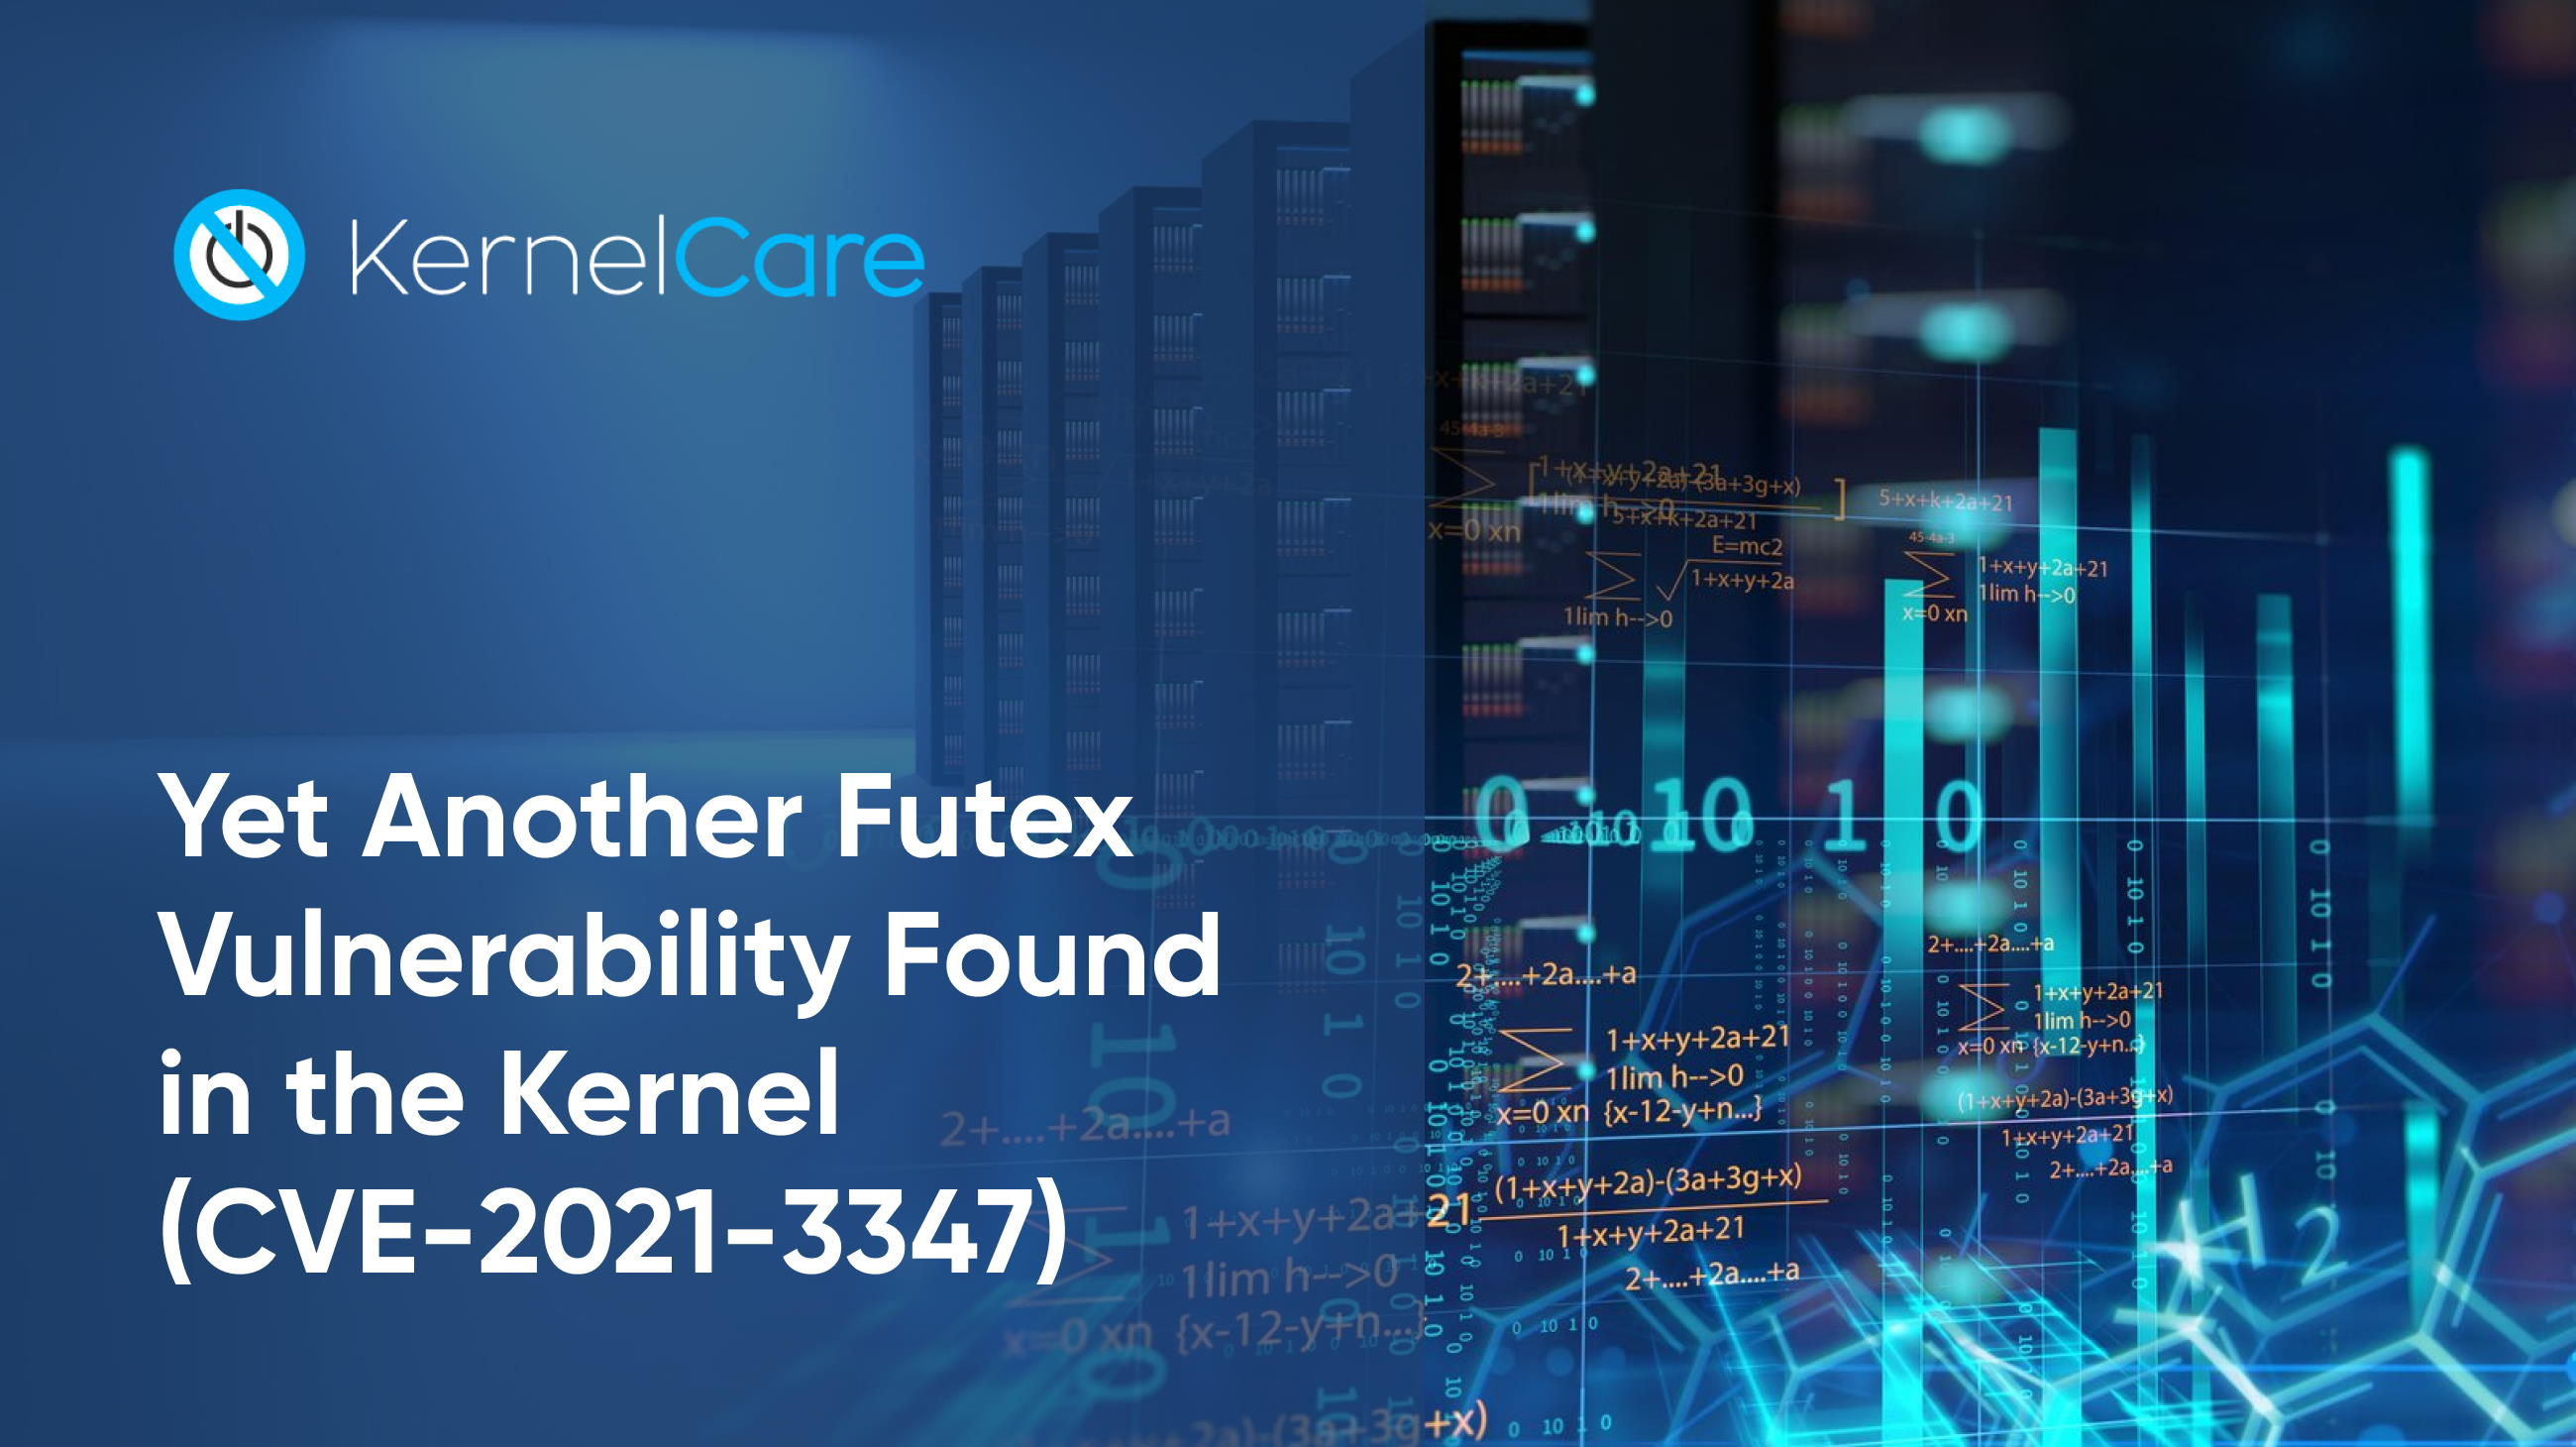 Yet Another Futex Vulnerability Found in the Kernel (CVE-2021-3347)